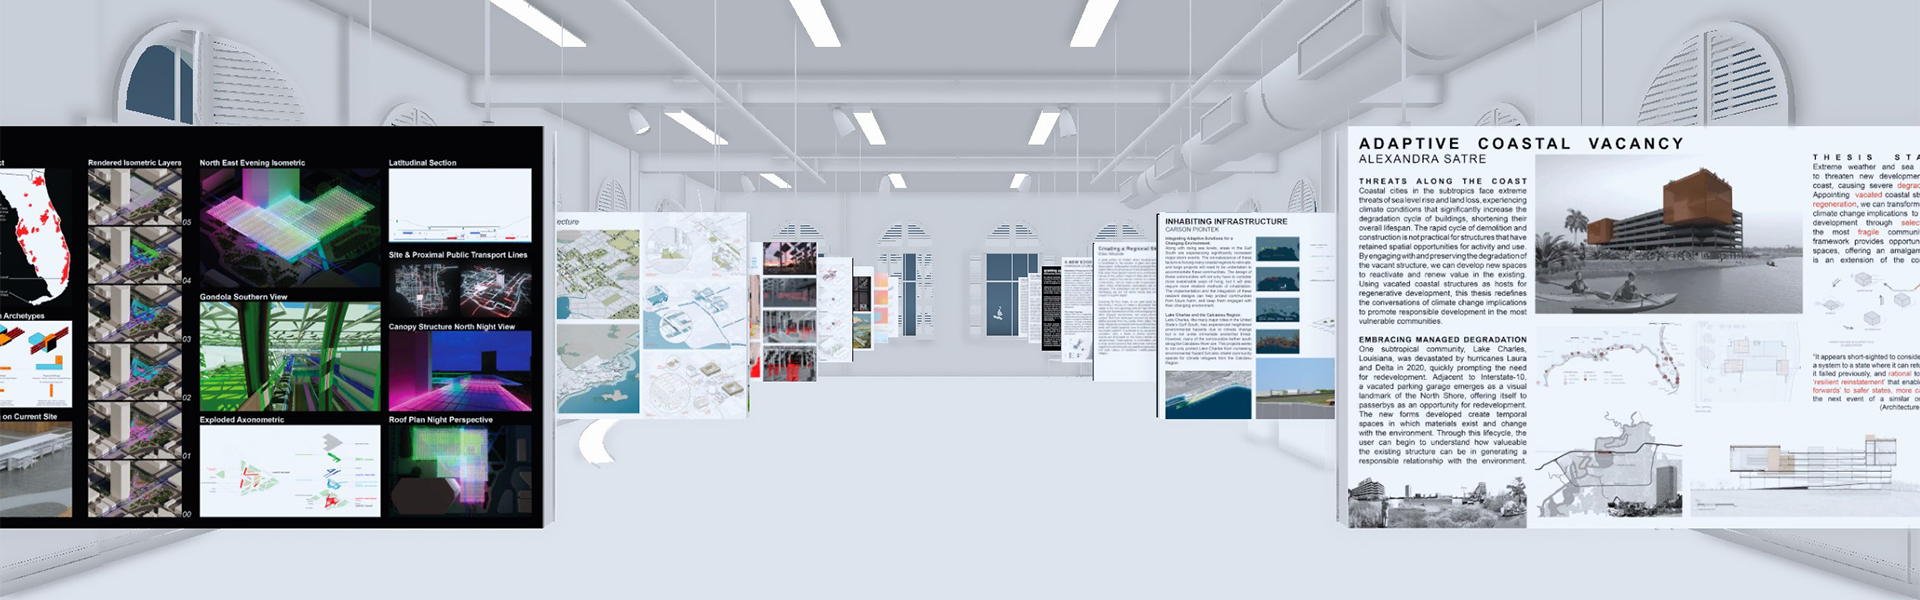 interior perspective rendering of large lecture hall with hanging boards on the left and right sides with student work on display in both text and images on the boards